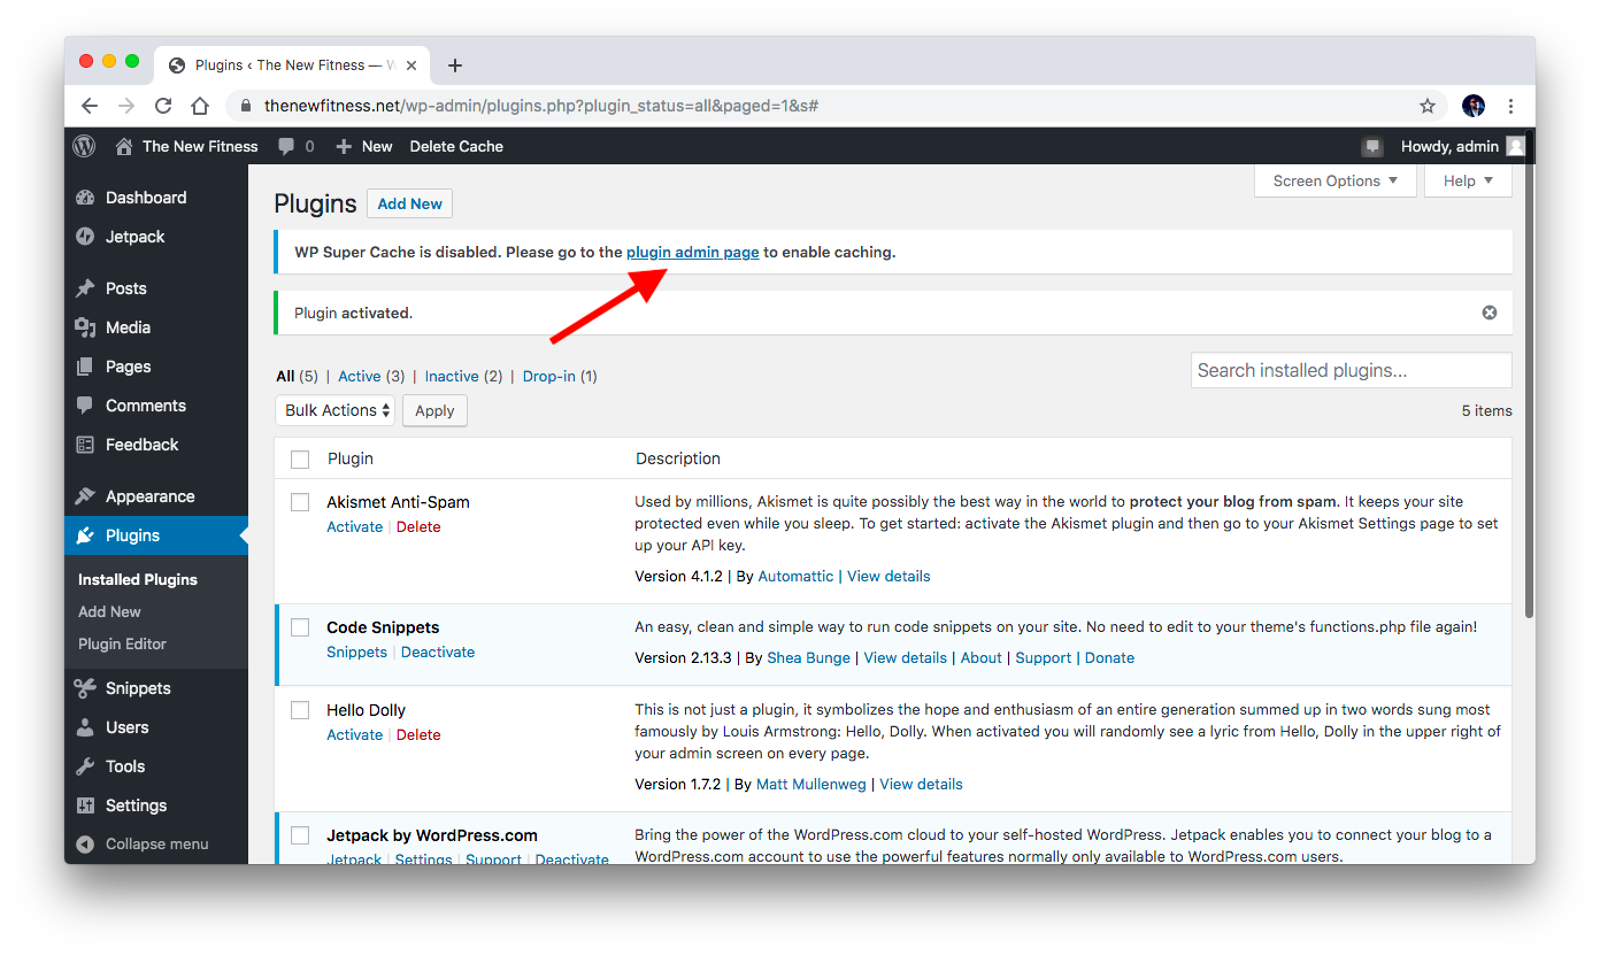 Go to plugin admin page